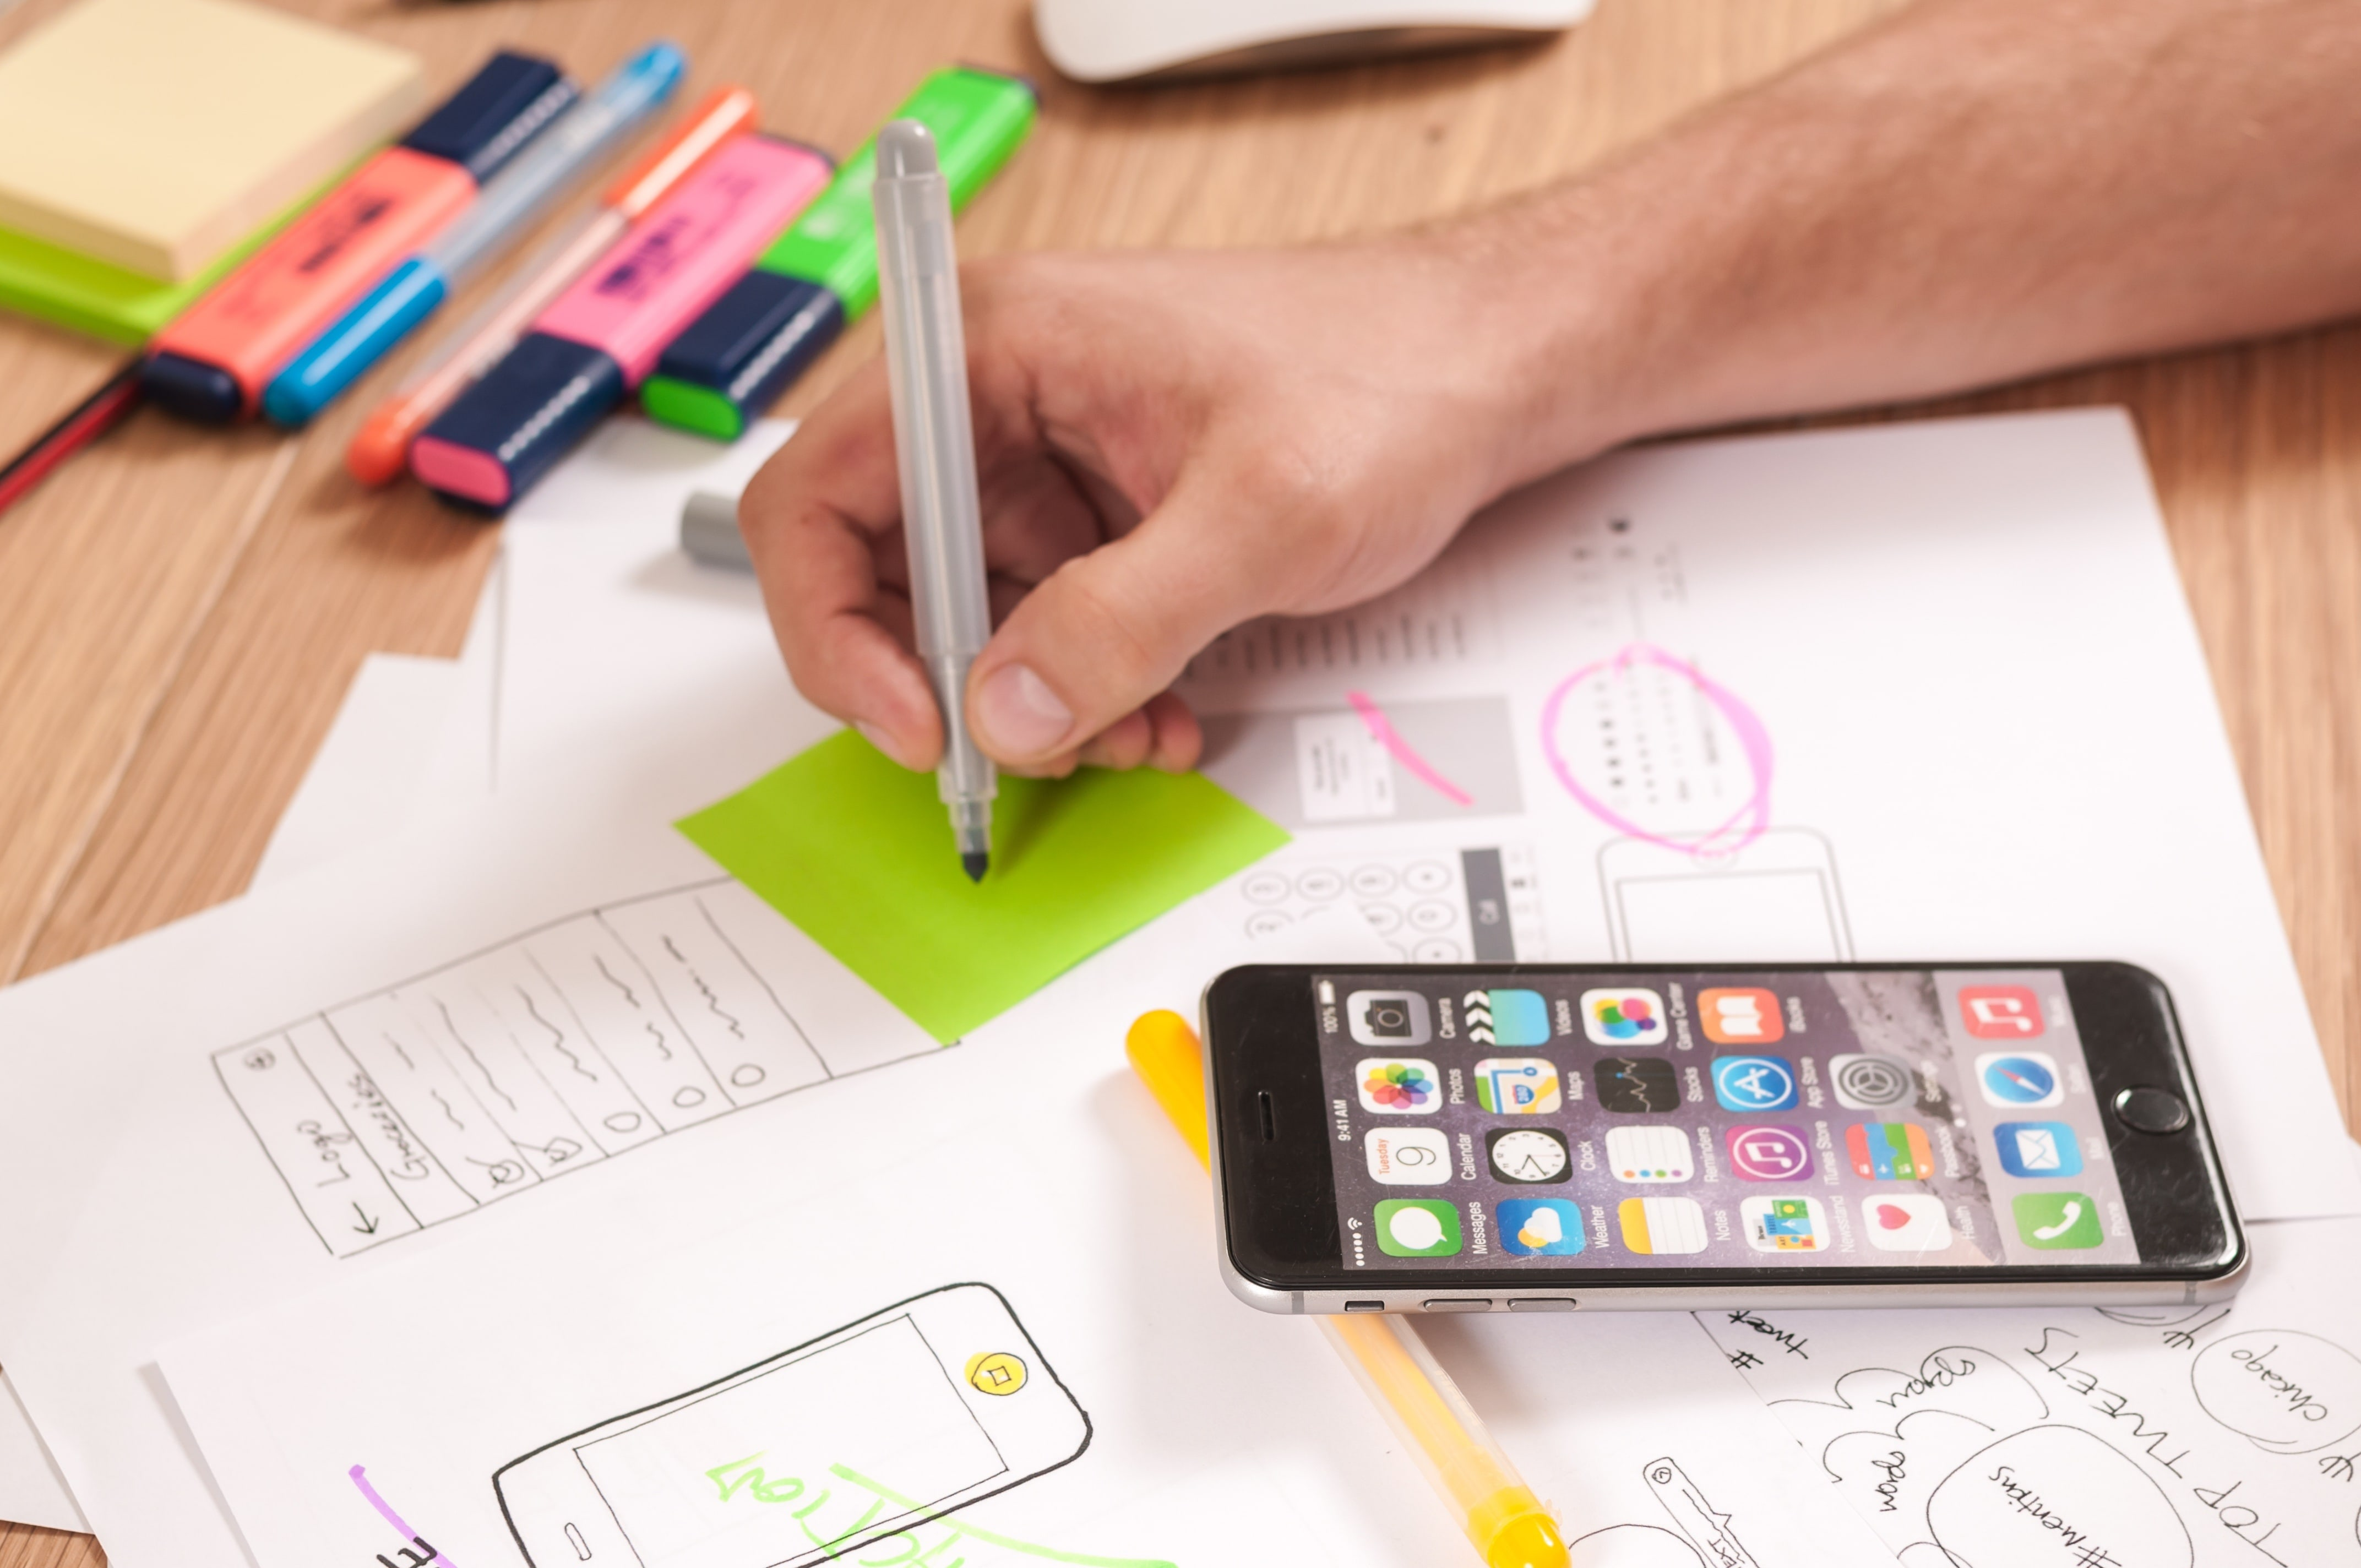 check the post:7 Tips For Writing Software Requirements for App Development for a description of the image